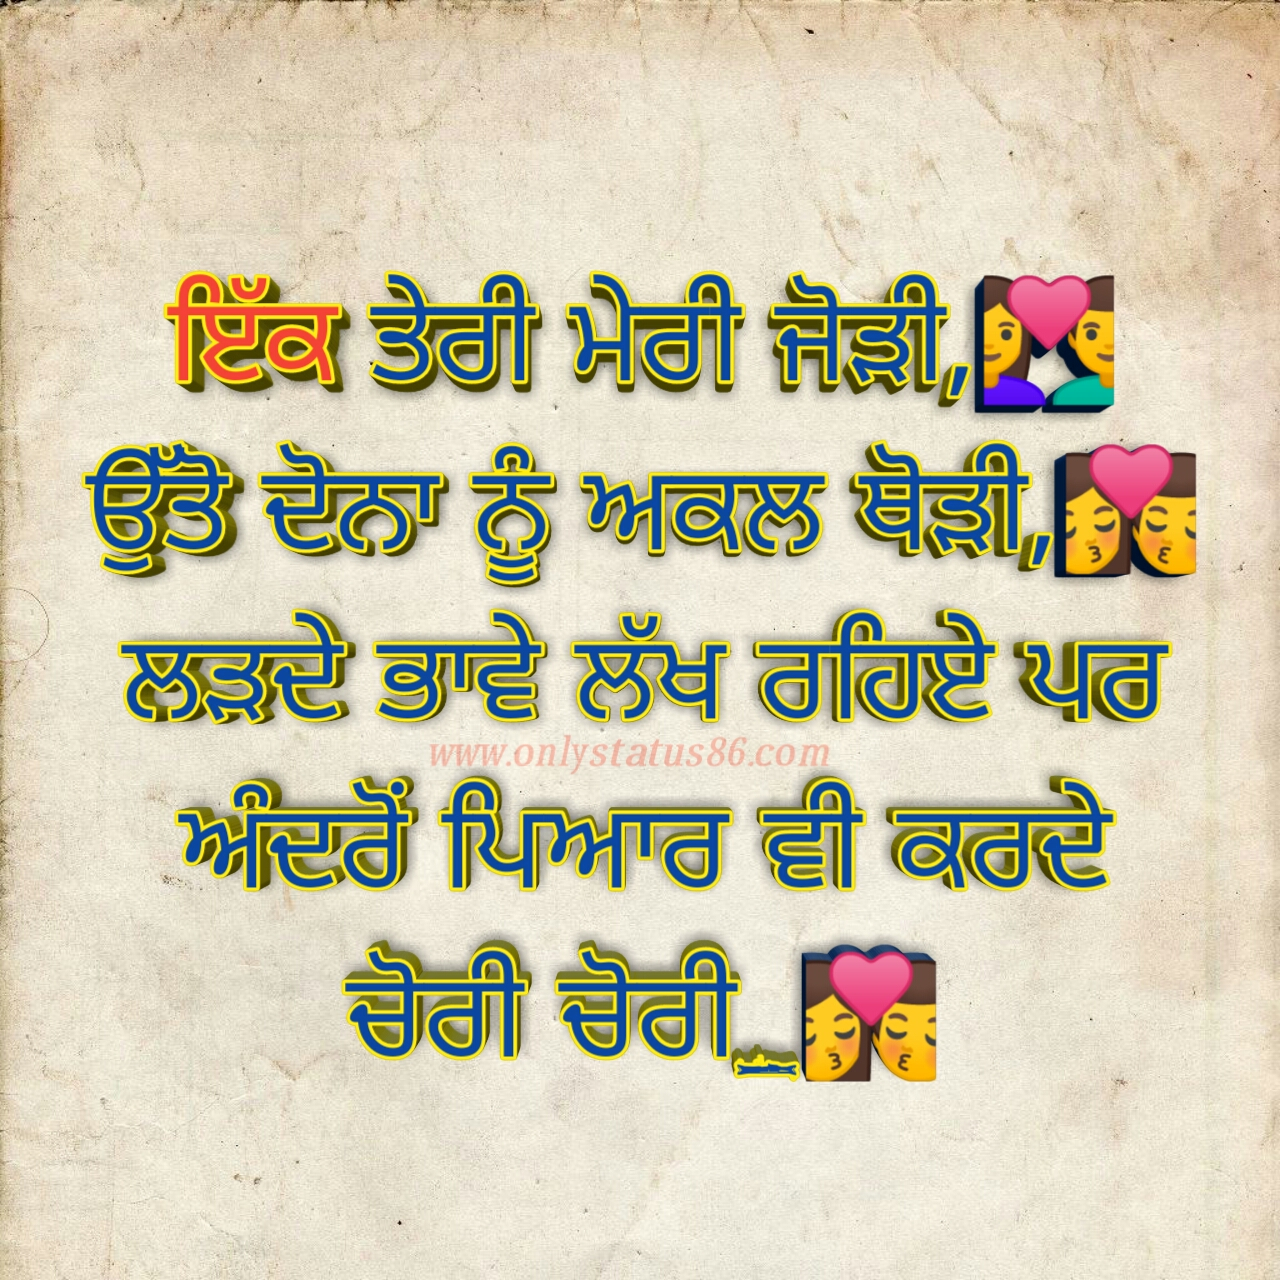 Attitude Punjabi Status Messages Images To Share On